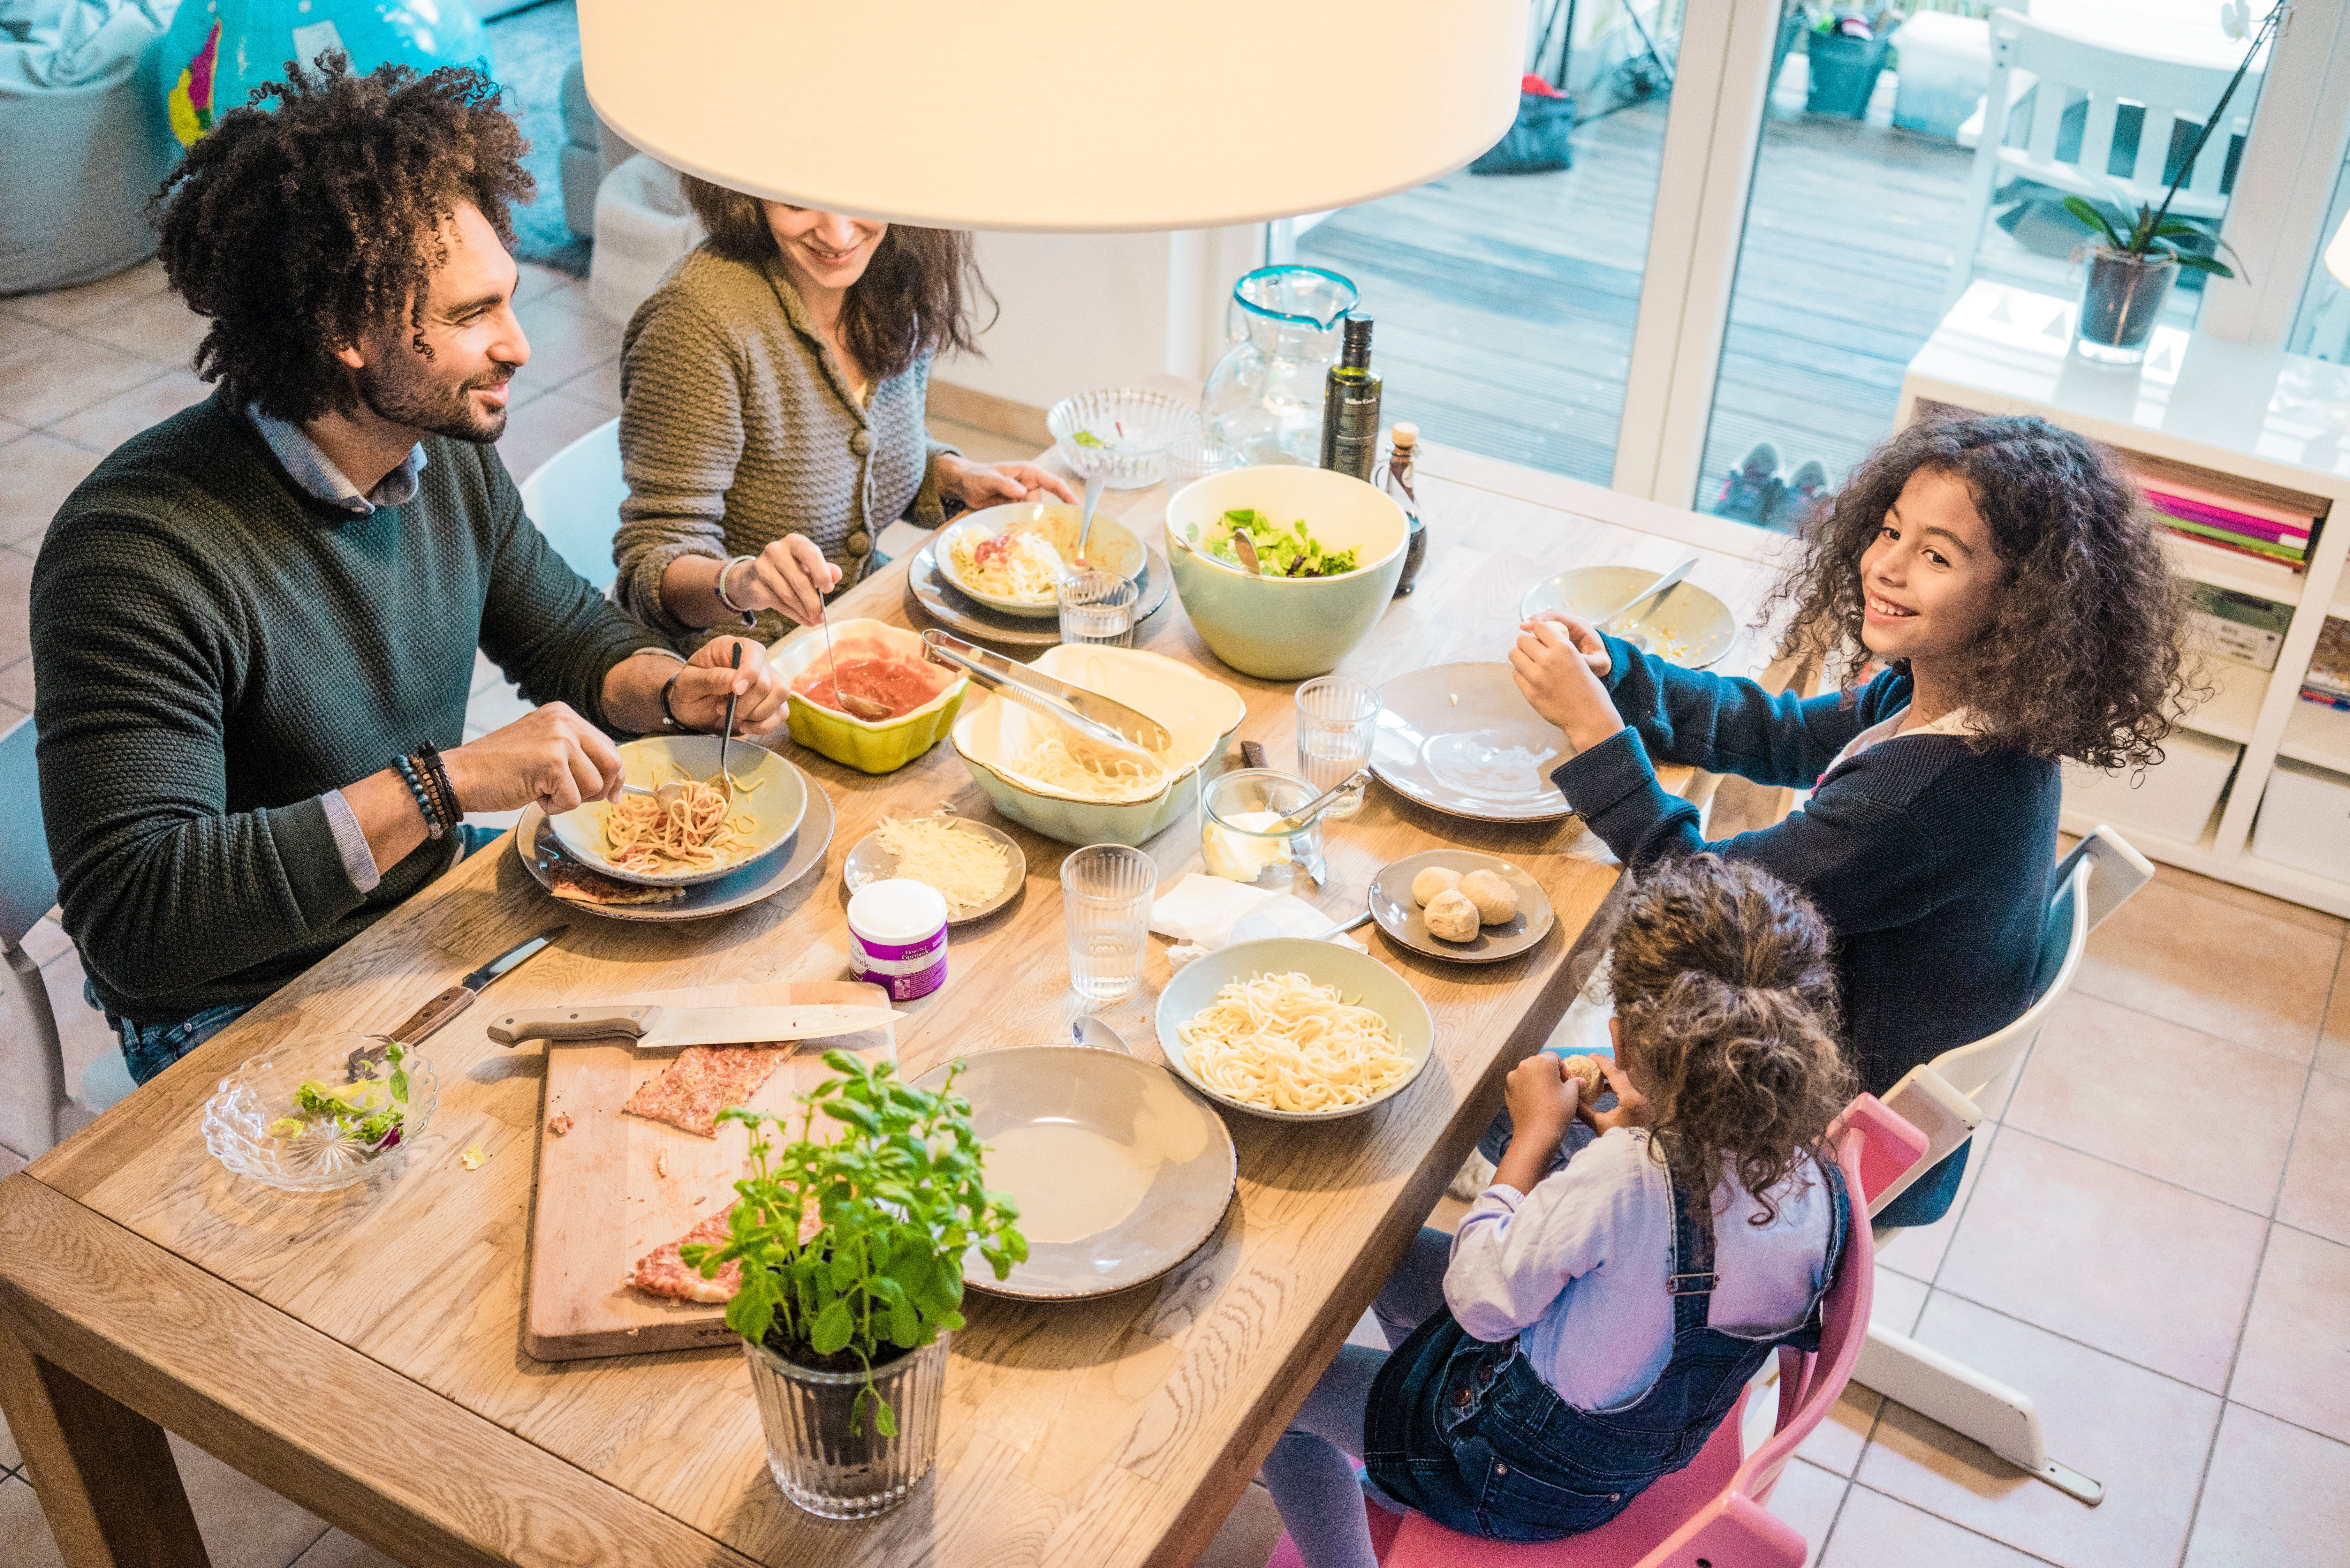 Eating together as a family has several benefits, but how can you make the most of this time?